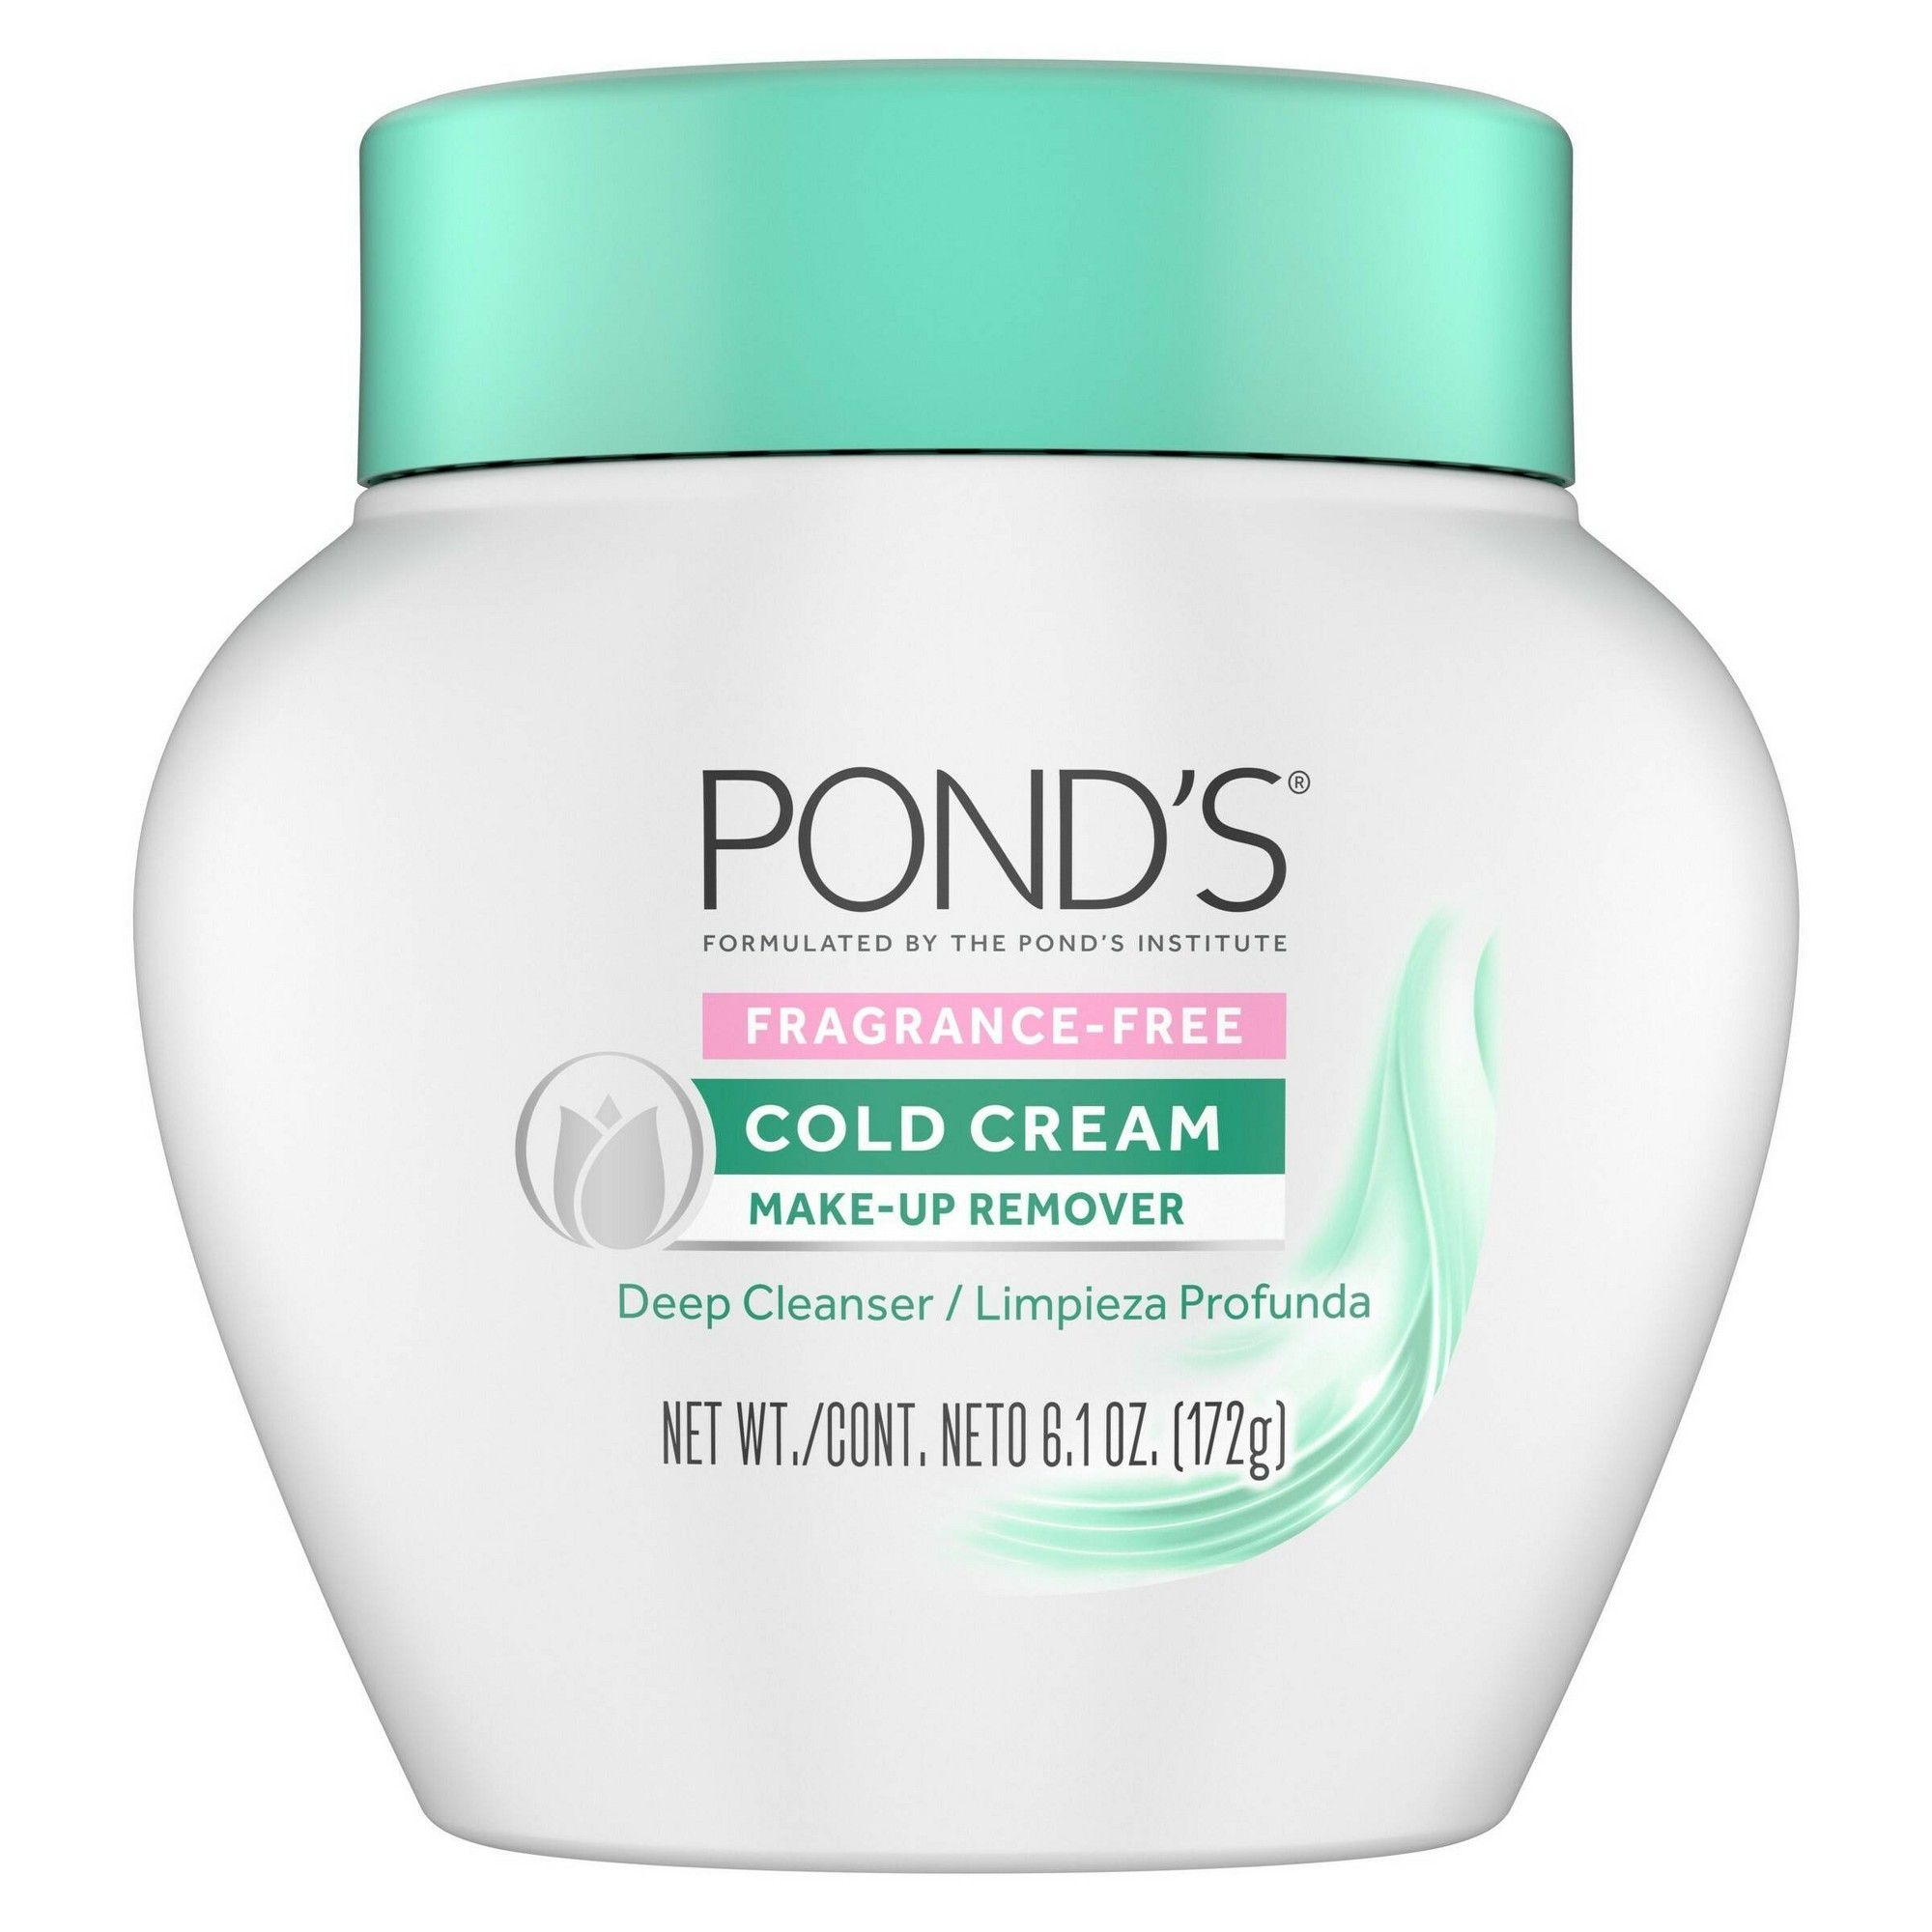 Pond's Fragrance Free Cold Cream MakeUp Remover 6.1oz